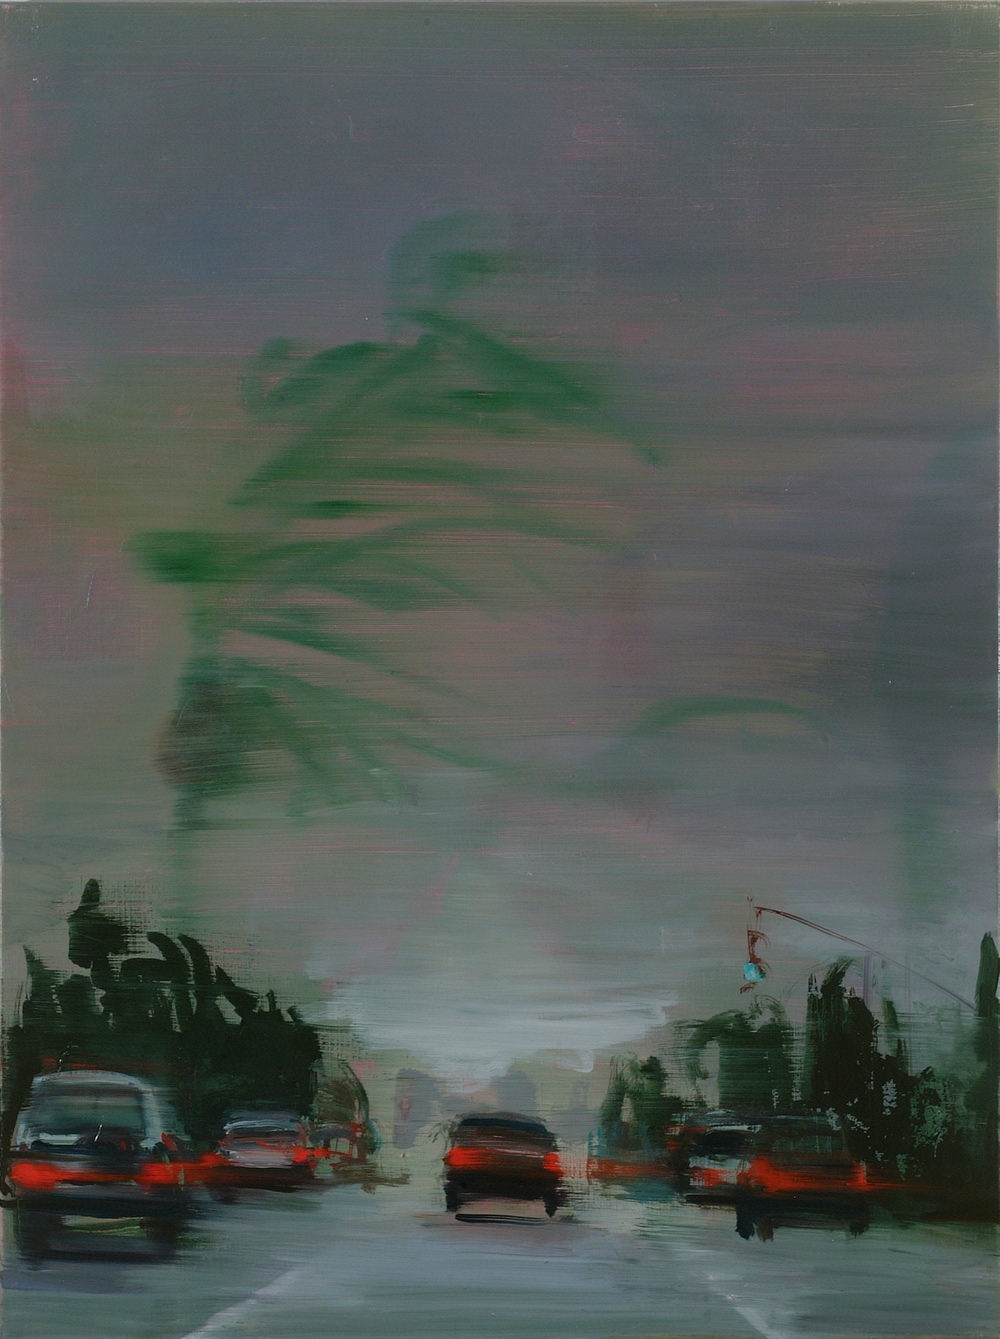 Post Card (Traffic), 2005